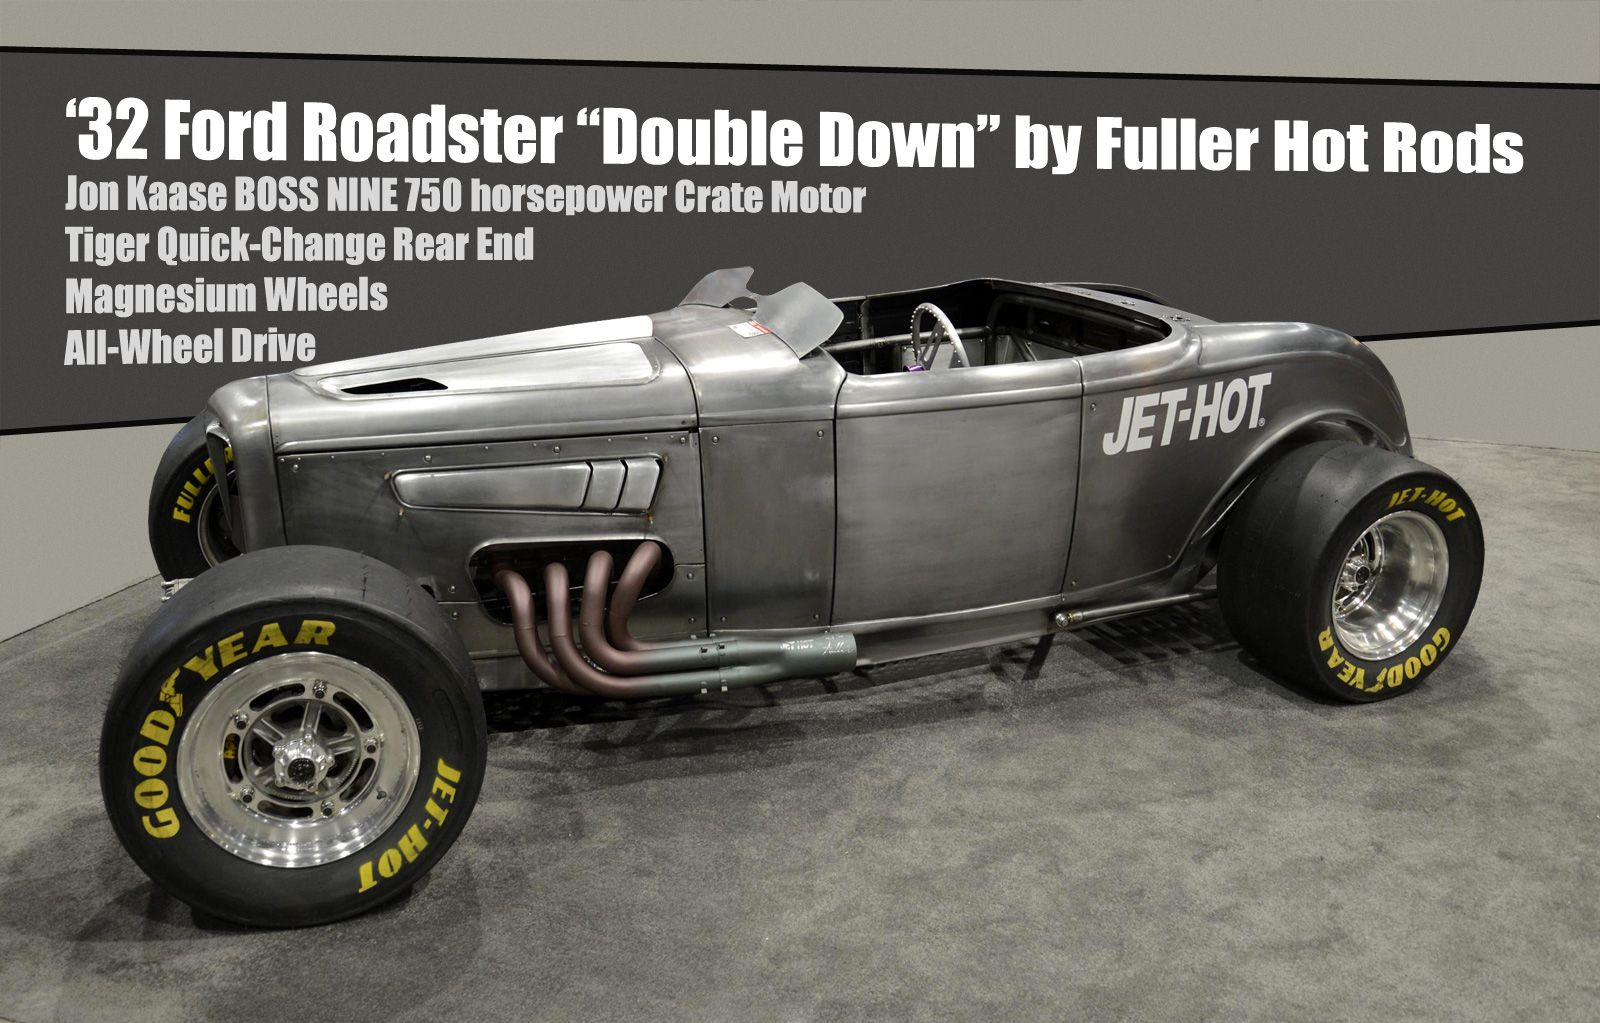 Double Down  750 horsepower AWD 1932 Ford Roadster Hot Rod - Diseno-art & At this yearu0027s SEMA show Fuller Hot Rods showed up with a u002732 ... markmcfarlin.com